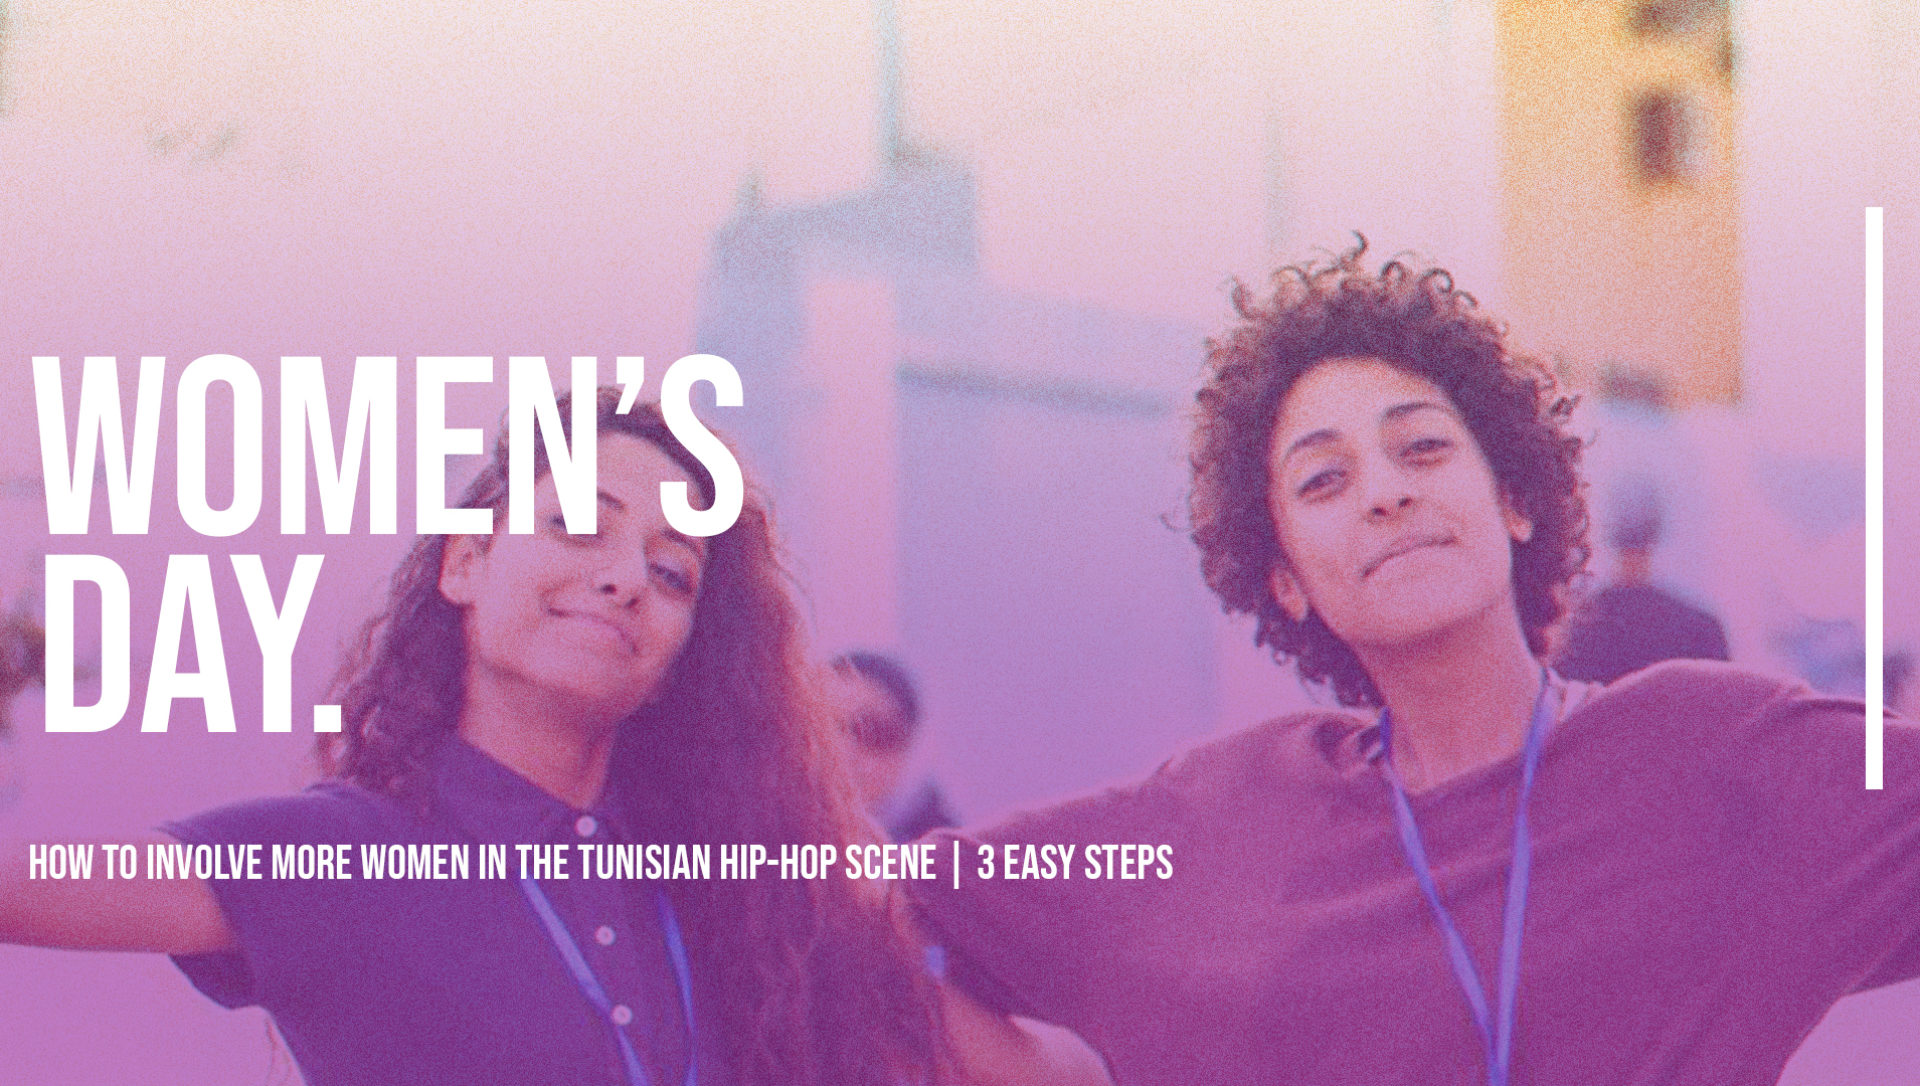 Women's Day: How to Involve more Women in the Tunisian Hip-Hop Scene | 3 Easy Steps